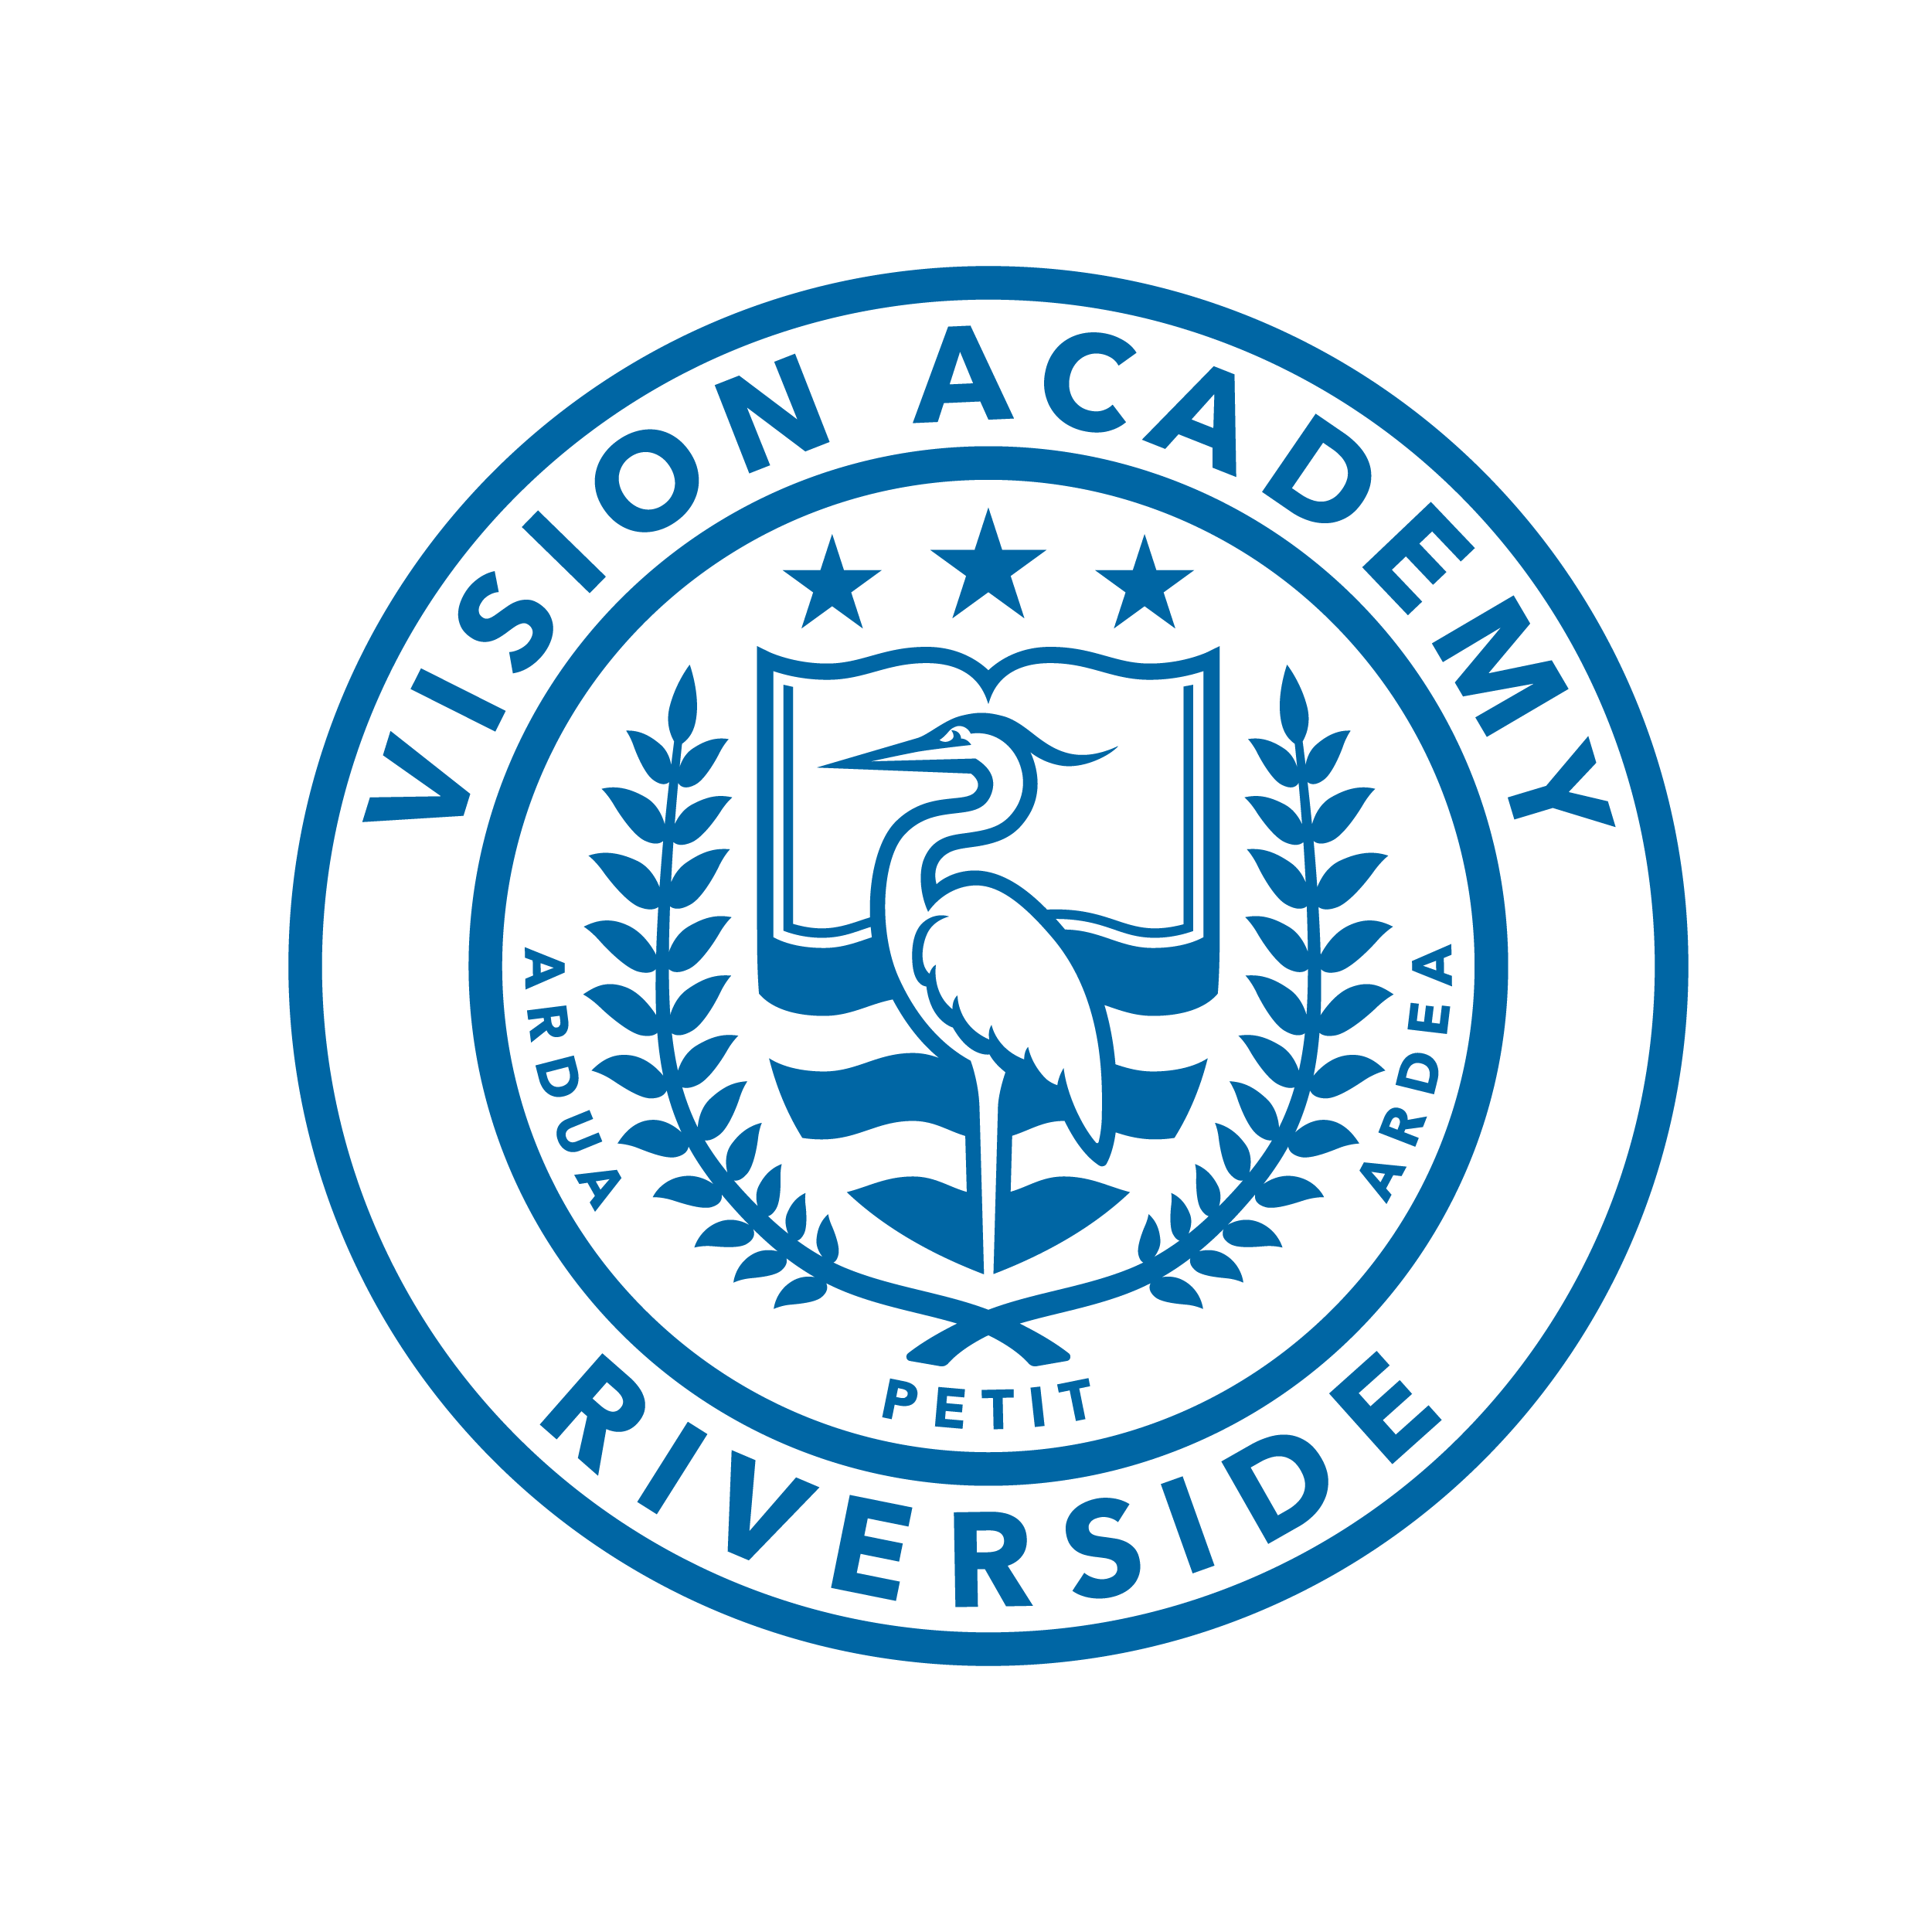 Vision Academy Seal-White-01 (1)